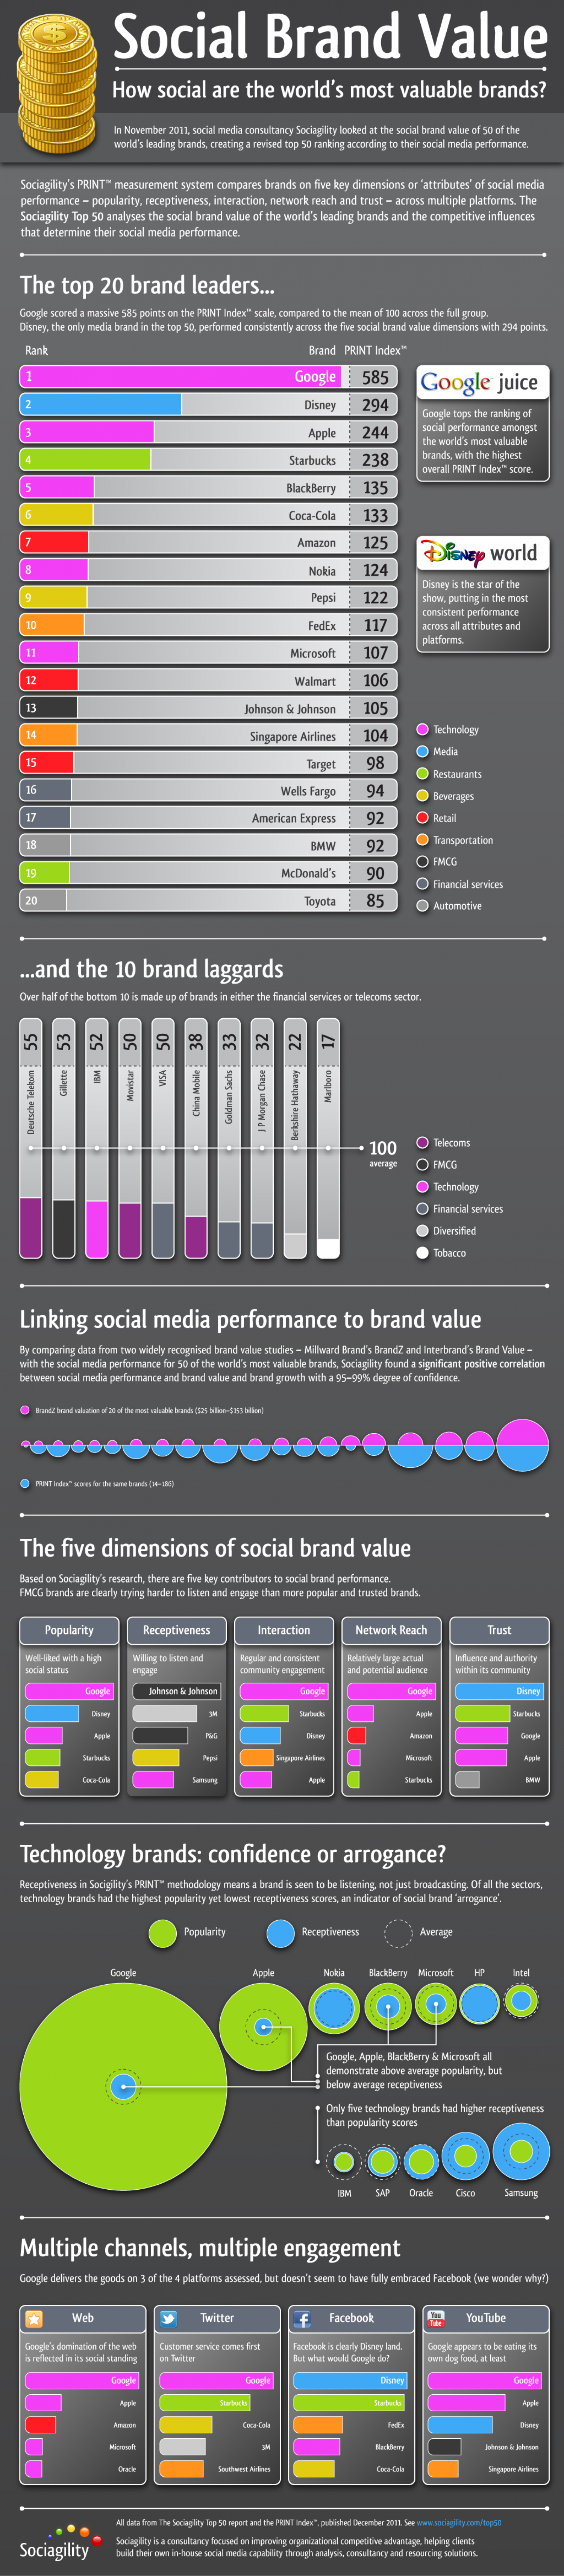 The Social Brand Value of the World